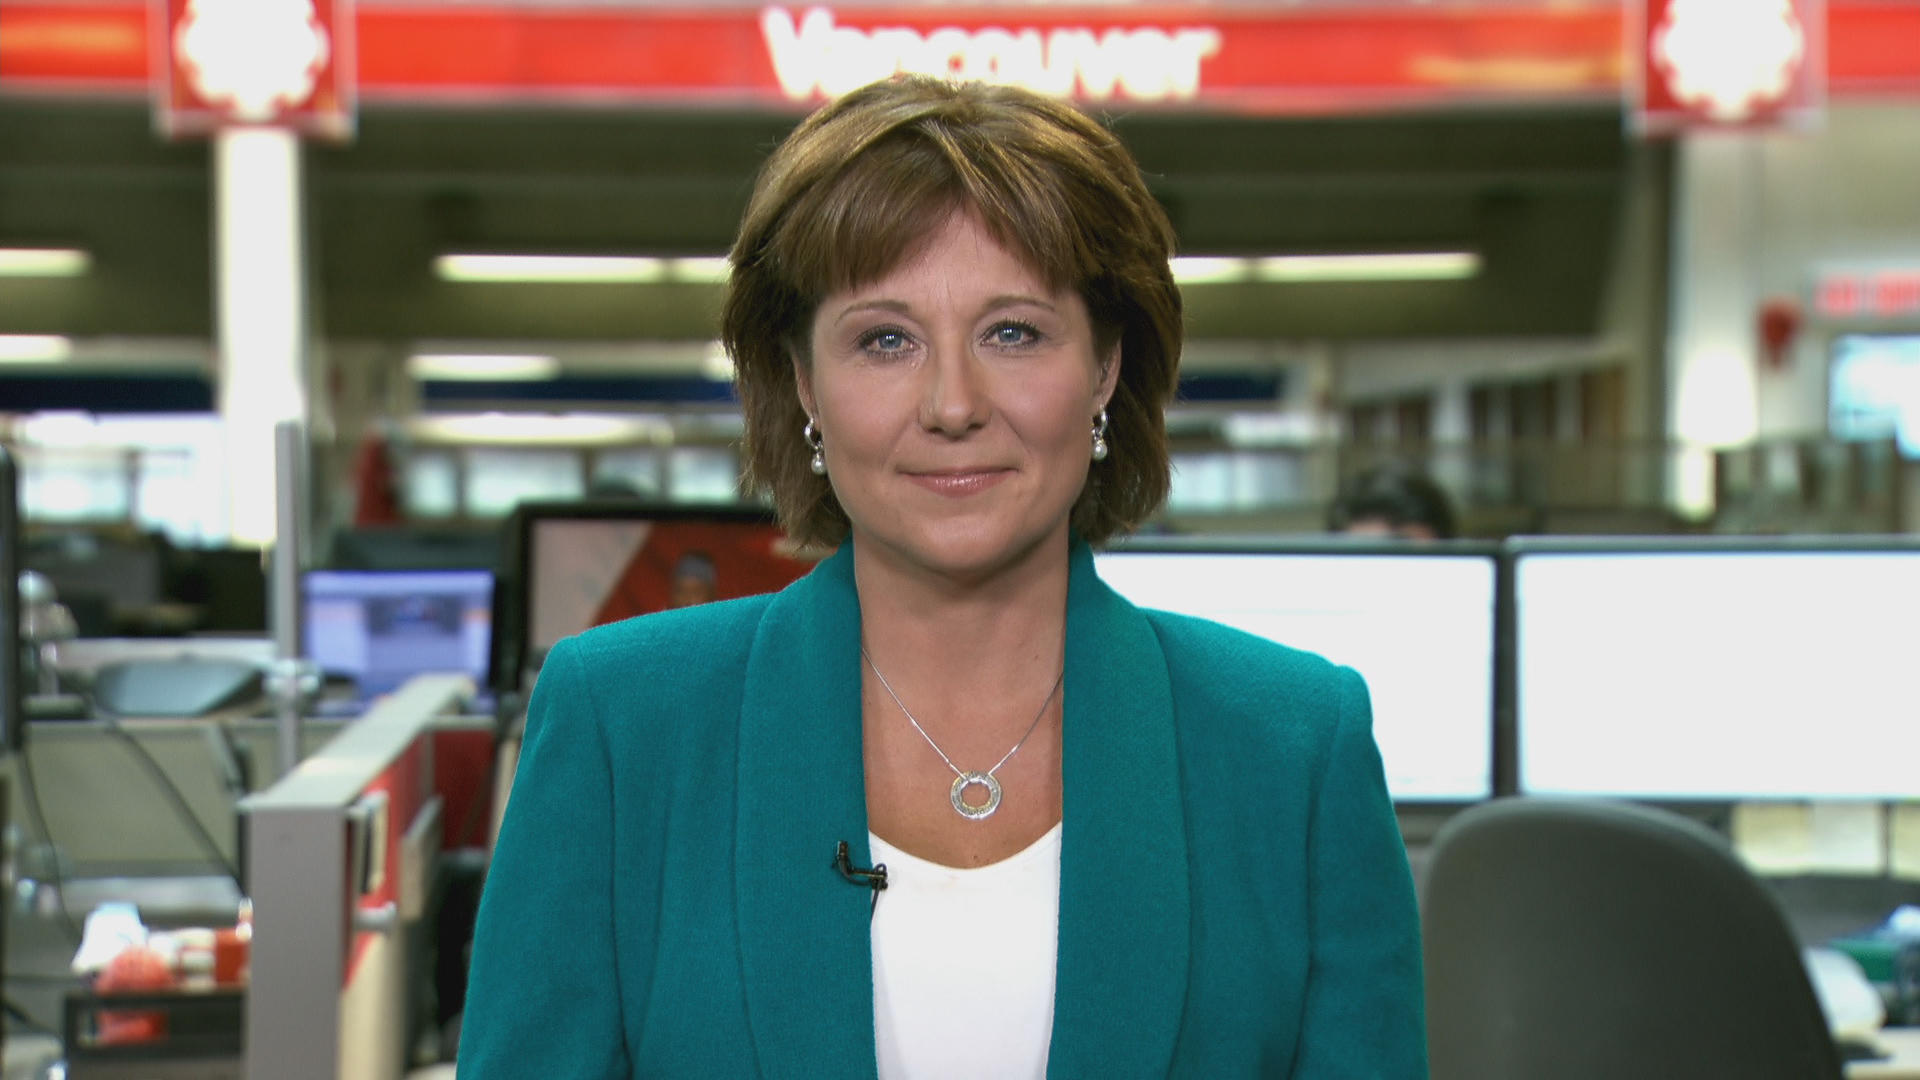 woman and canadian politics Meet katie telford, the most influential woman in canadian politics katie telford's rise has been largely under the radar now she advises the pm on just about.